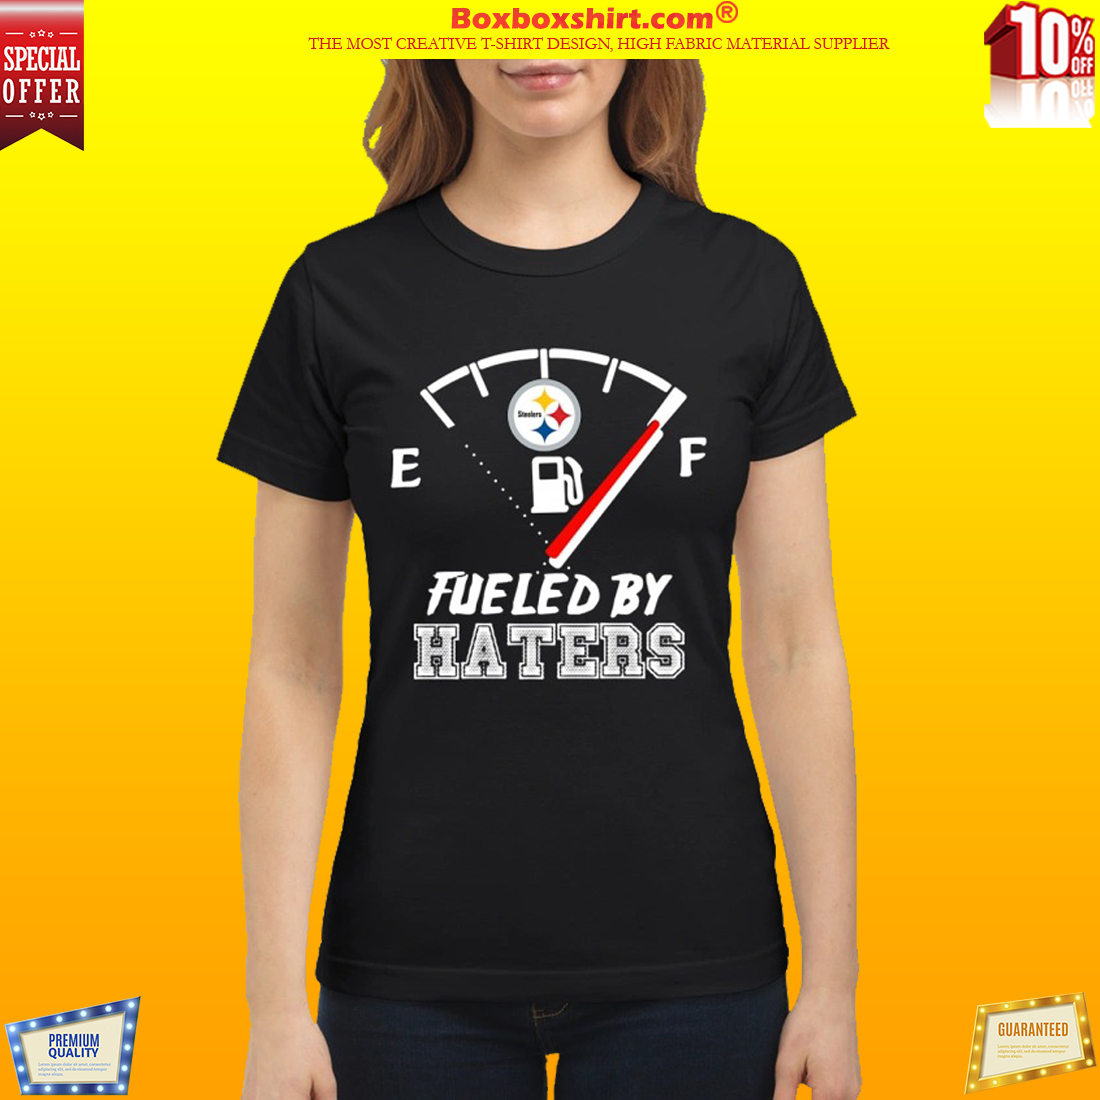 Pittsburgh Steelers fueled by haters classic shirt